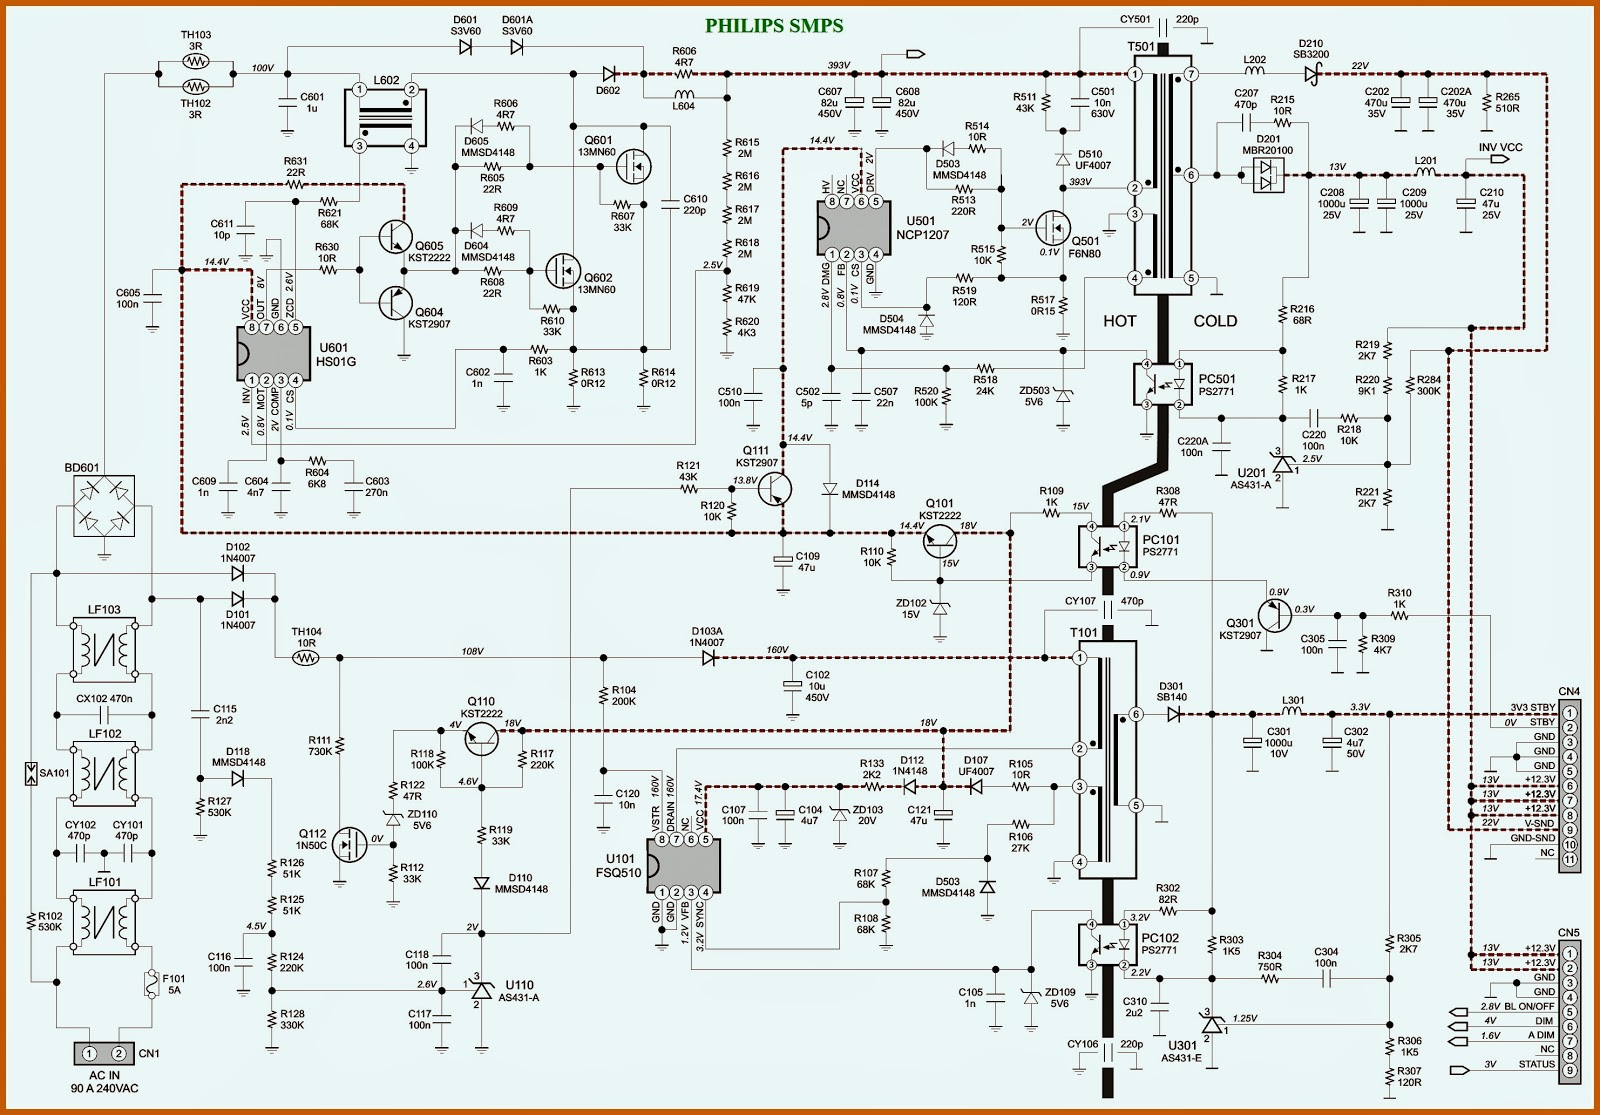 PHILIPS 1 philips 40pfl3606 lcd tv power supply schematic electro help samsung led tv wiring diagram at bakdesigns.co